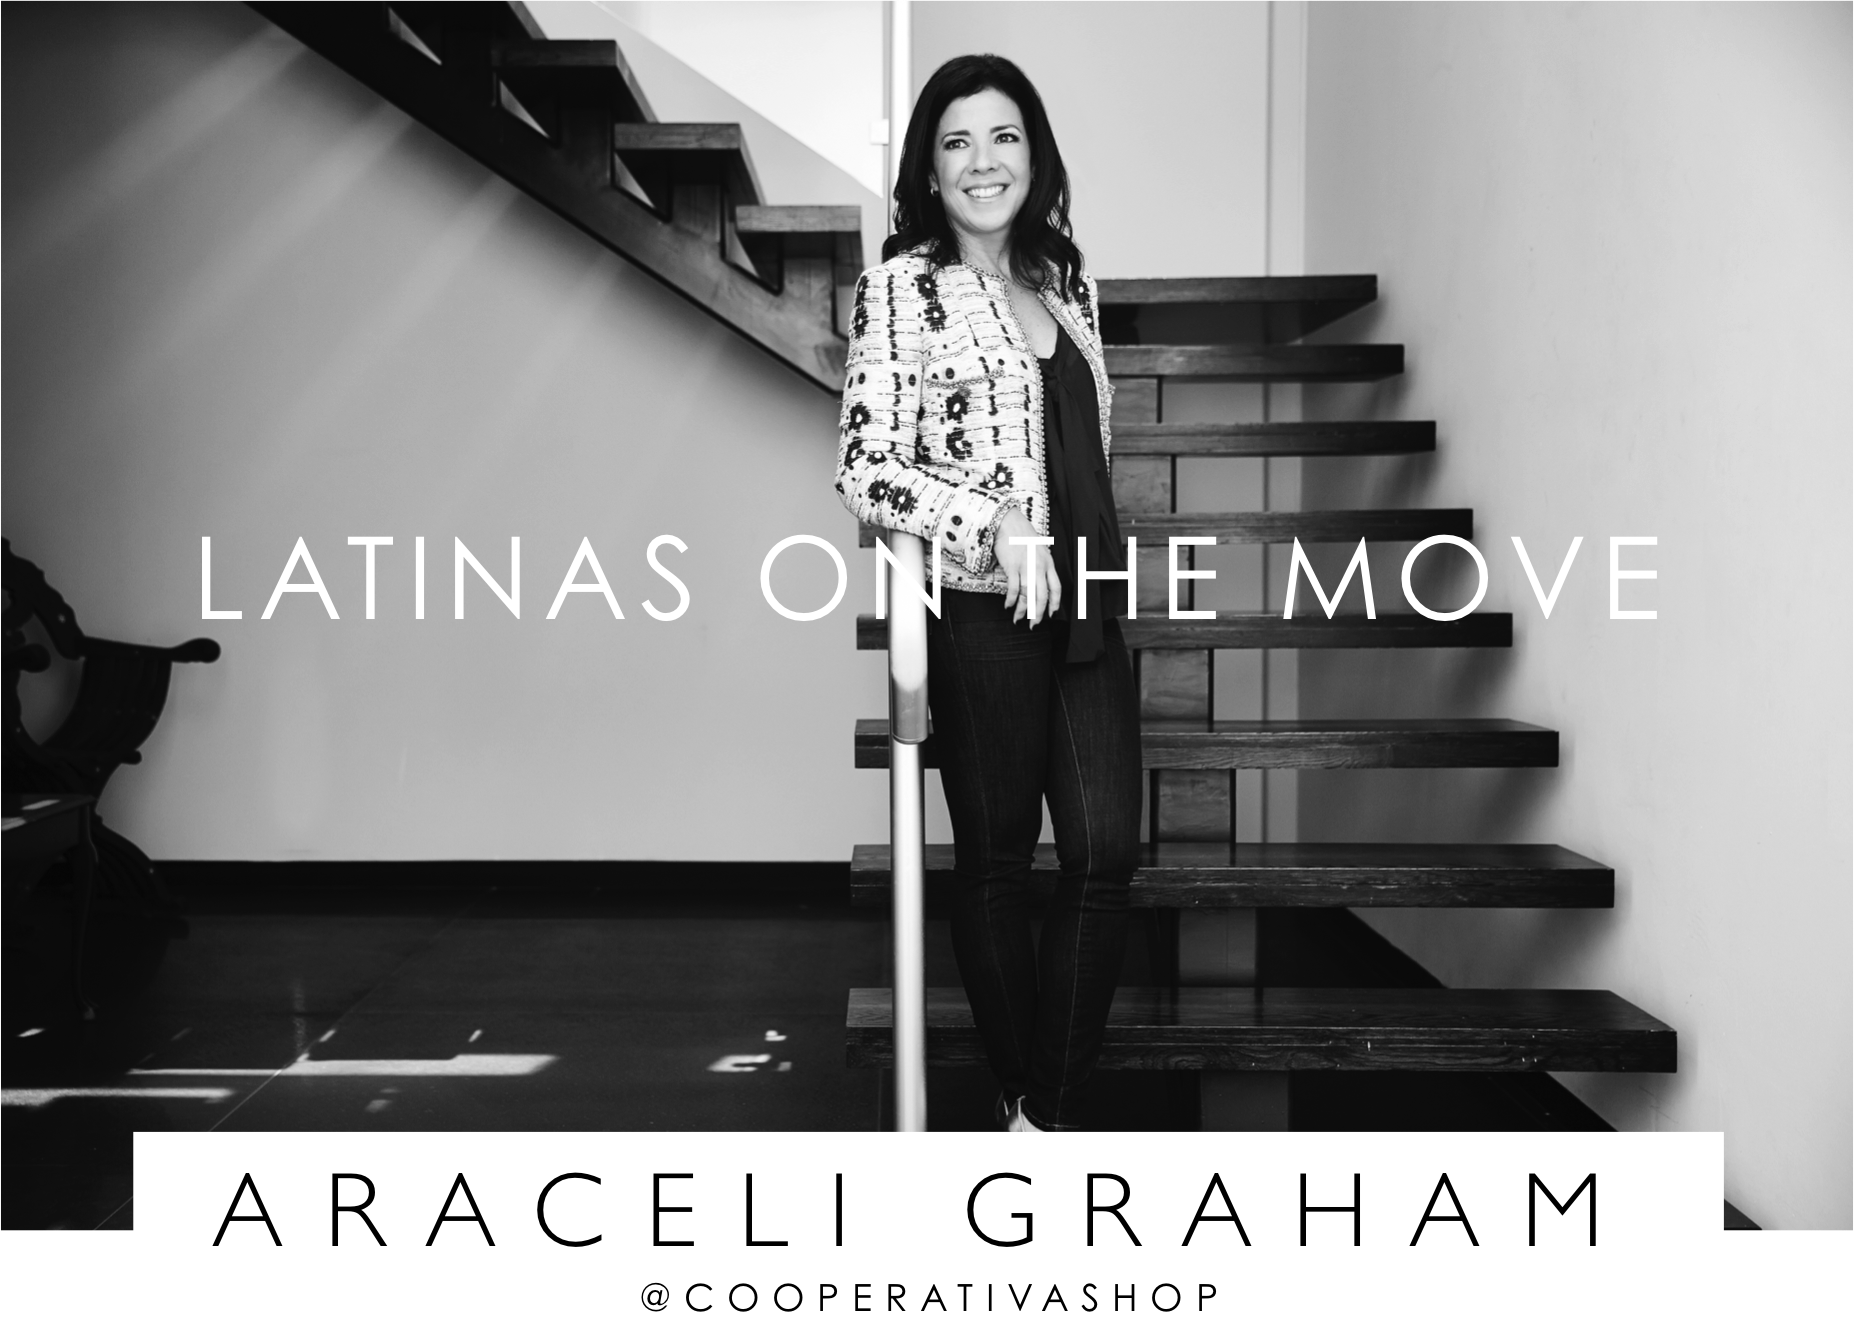 LATINAS ON THE MOVE_ARACELI GRAHAM